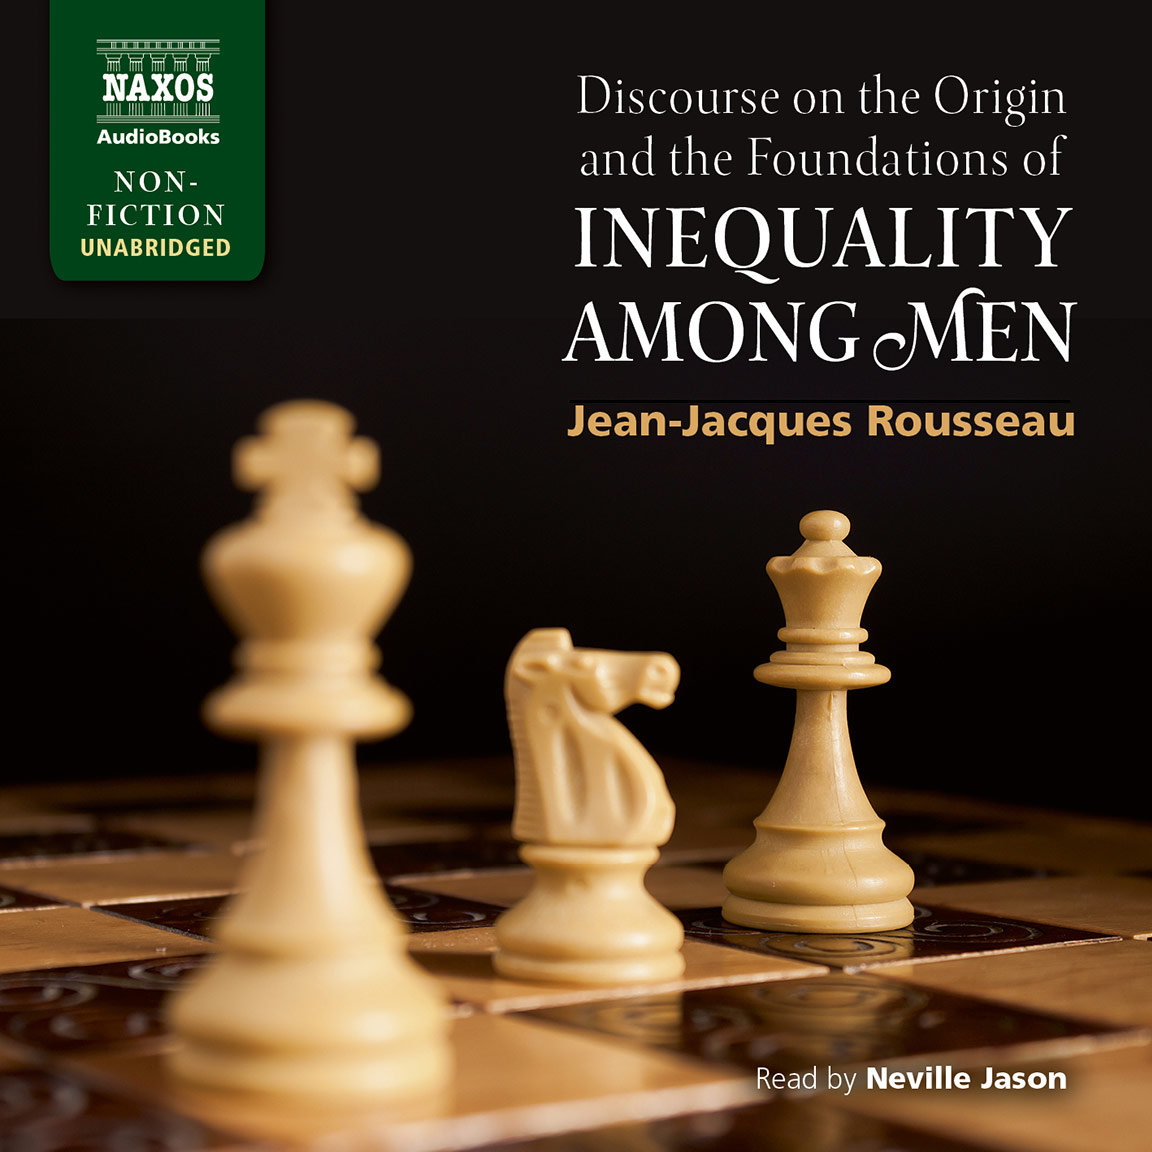 Discourse on the Origin and the Foundations of Inequality Among Men (unabridged)